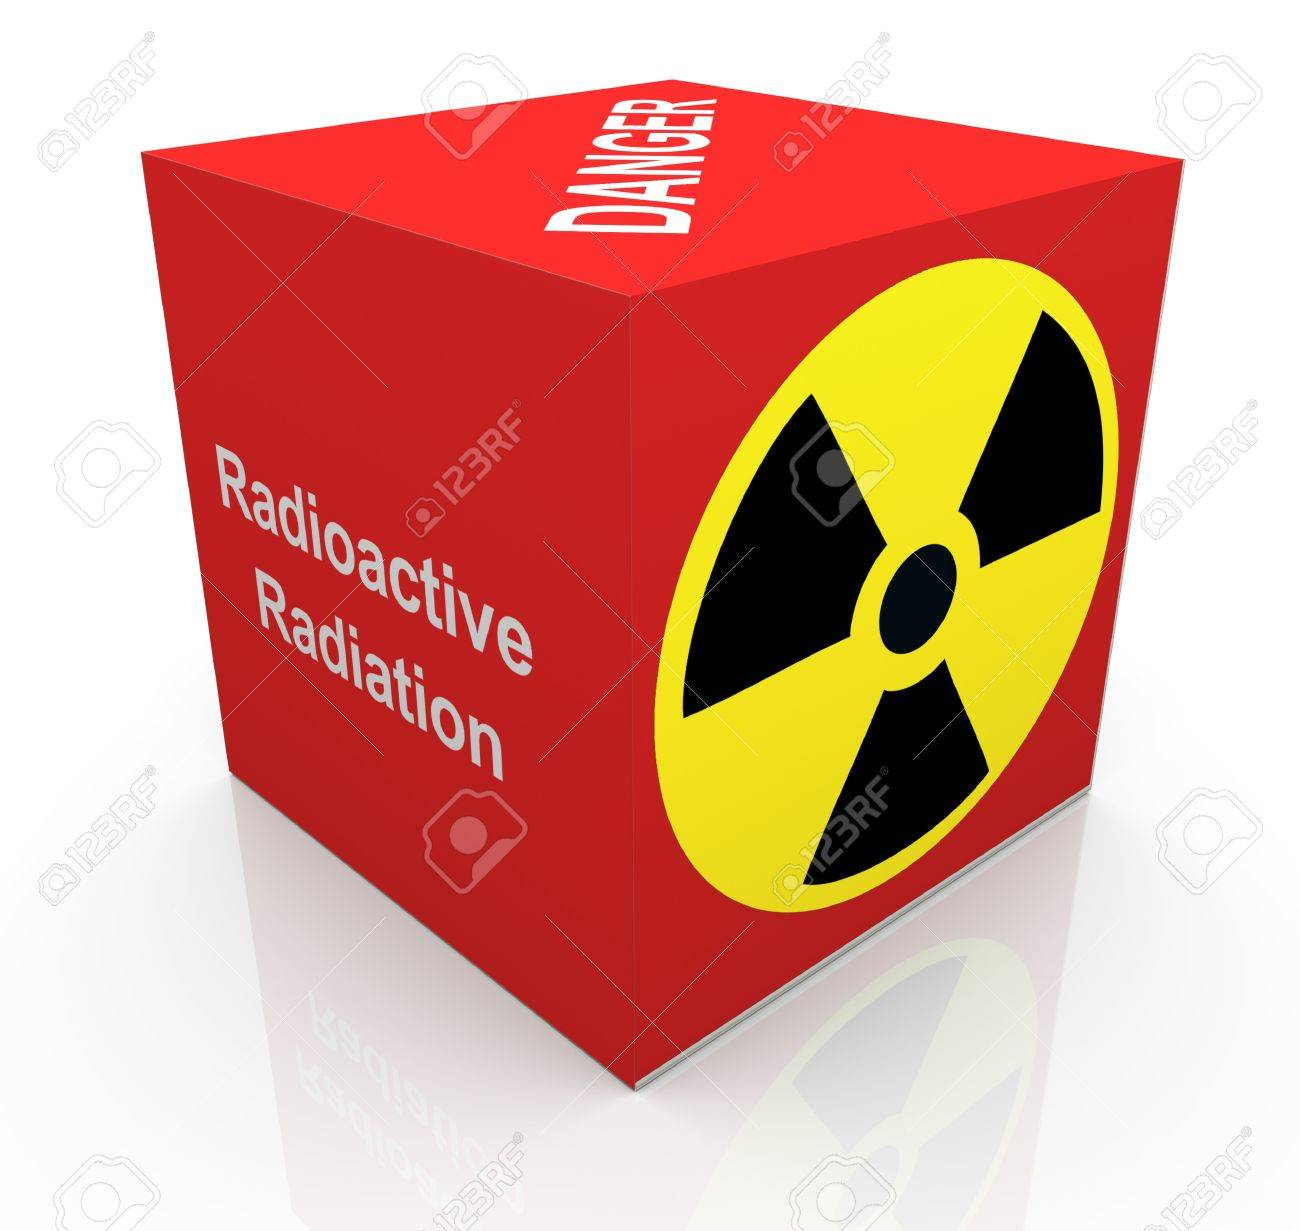 3d render of cube with radioactive radiation symbol and text Stock Photo - 10402506